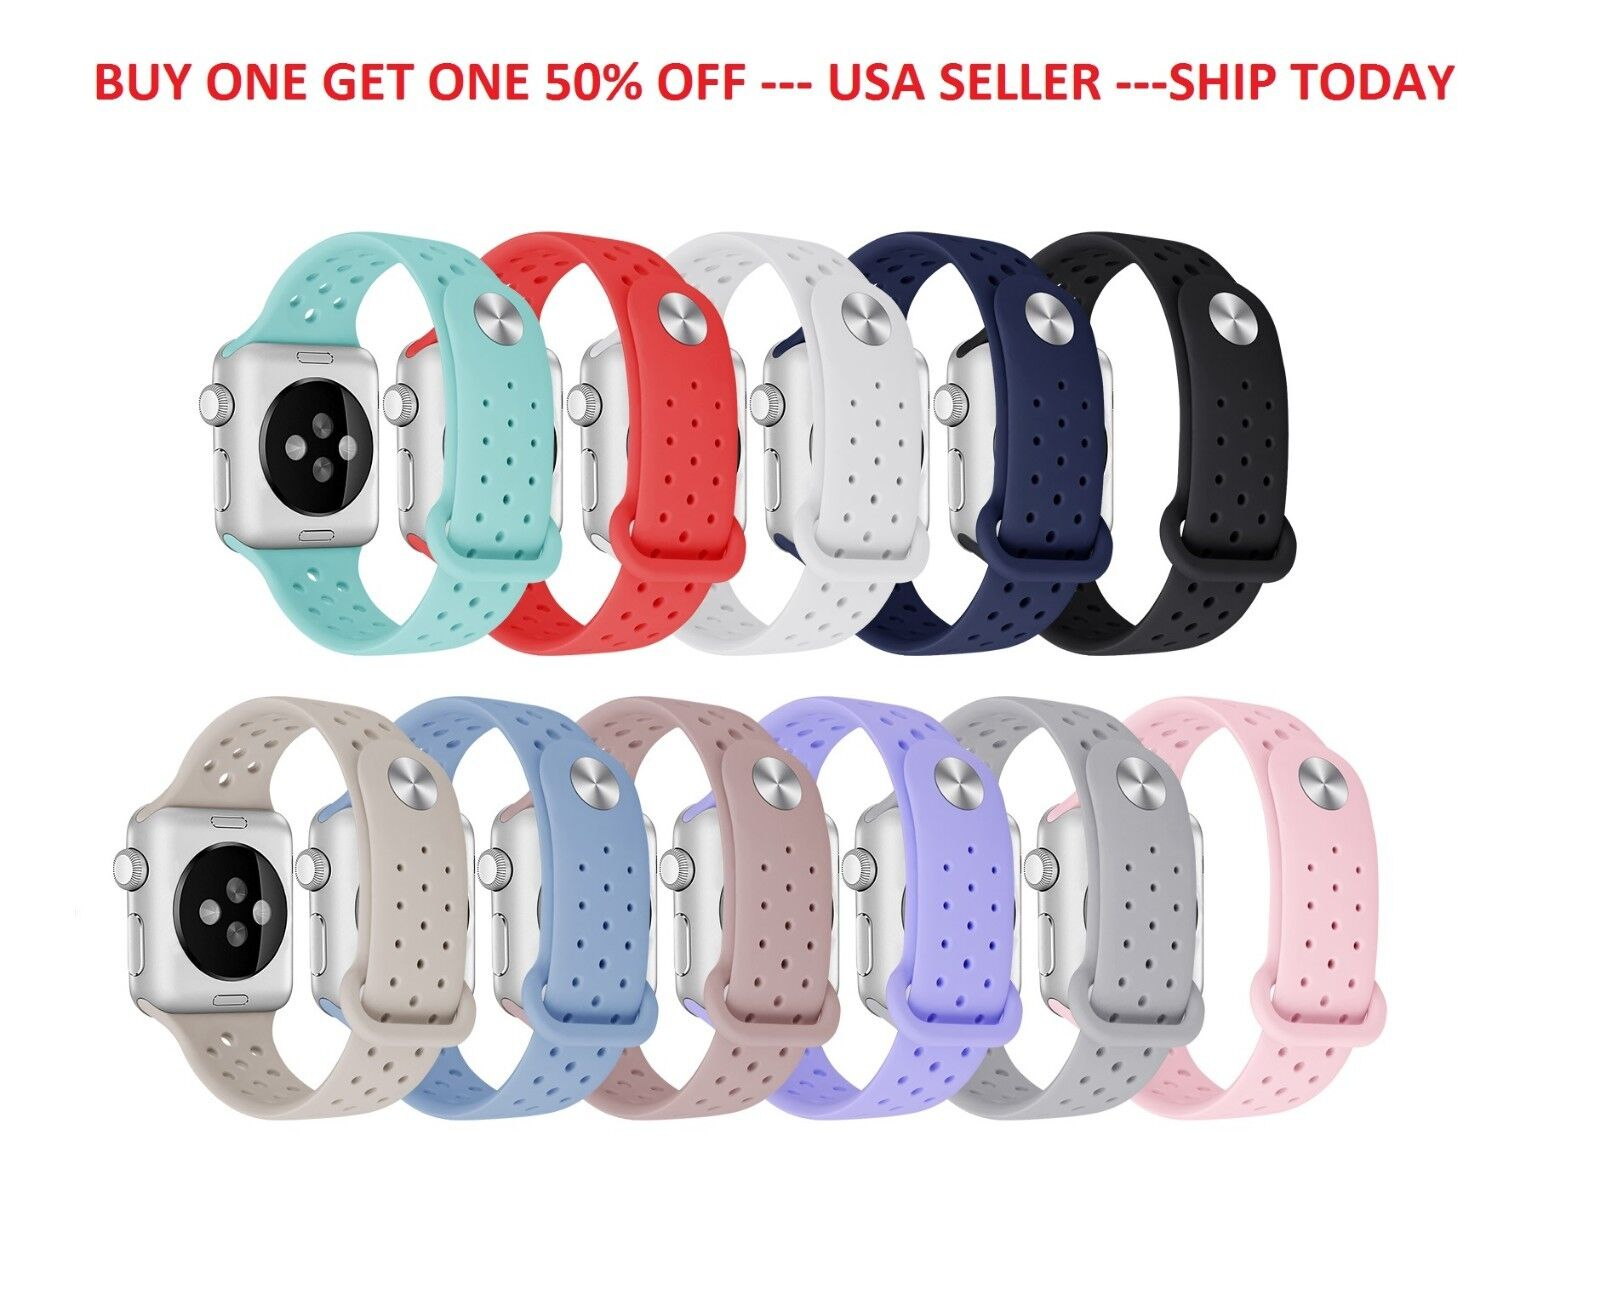 Replacement Sports Silicone Strap Band for Apple Watch Series 4/3/2/1 38mm 42mm Jewelry & Watches